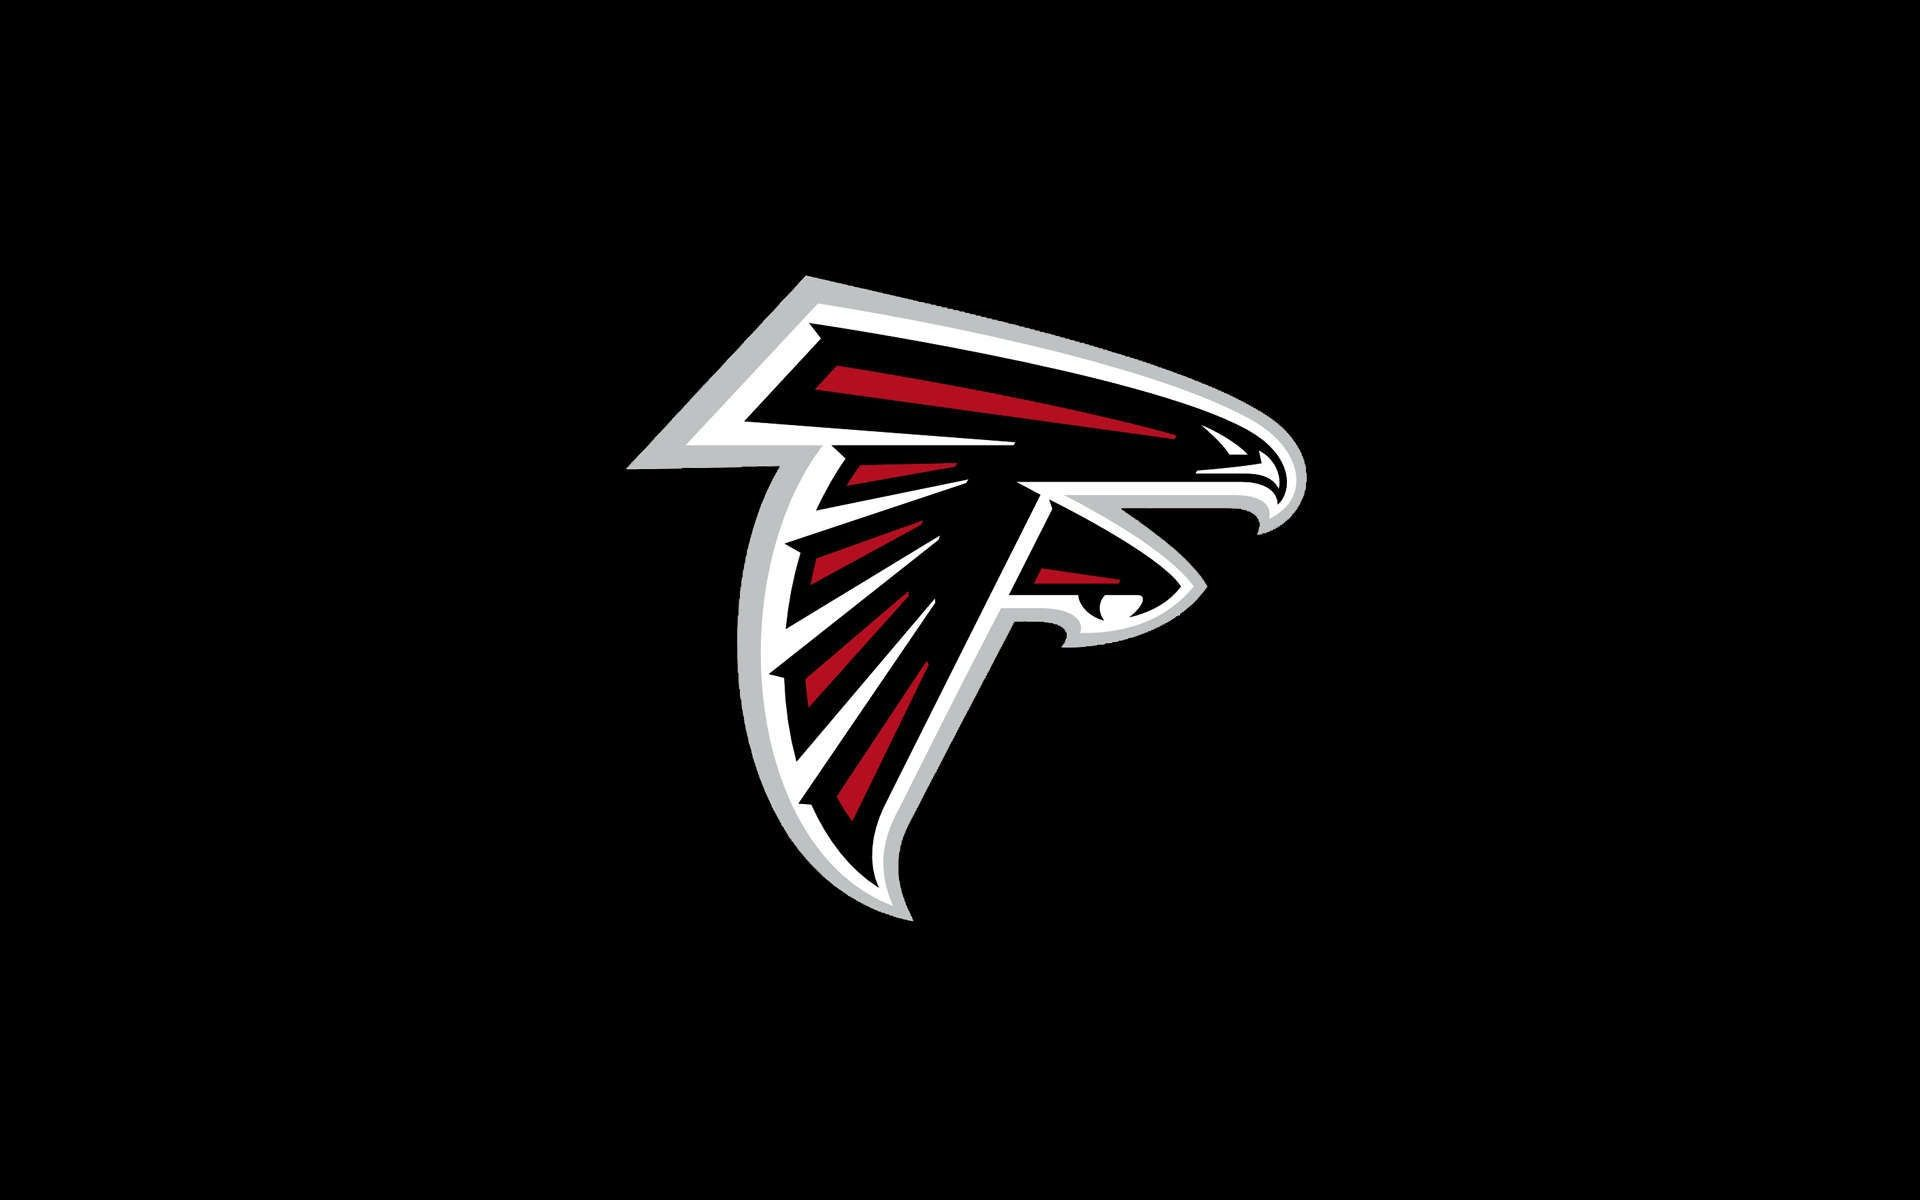 Luxury Atlanta Falcons Desktop Wallpaper Atlanta Falcons Falcons Atlanta